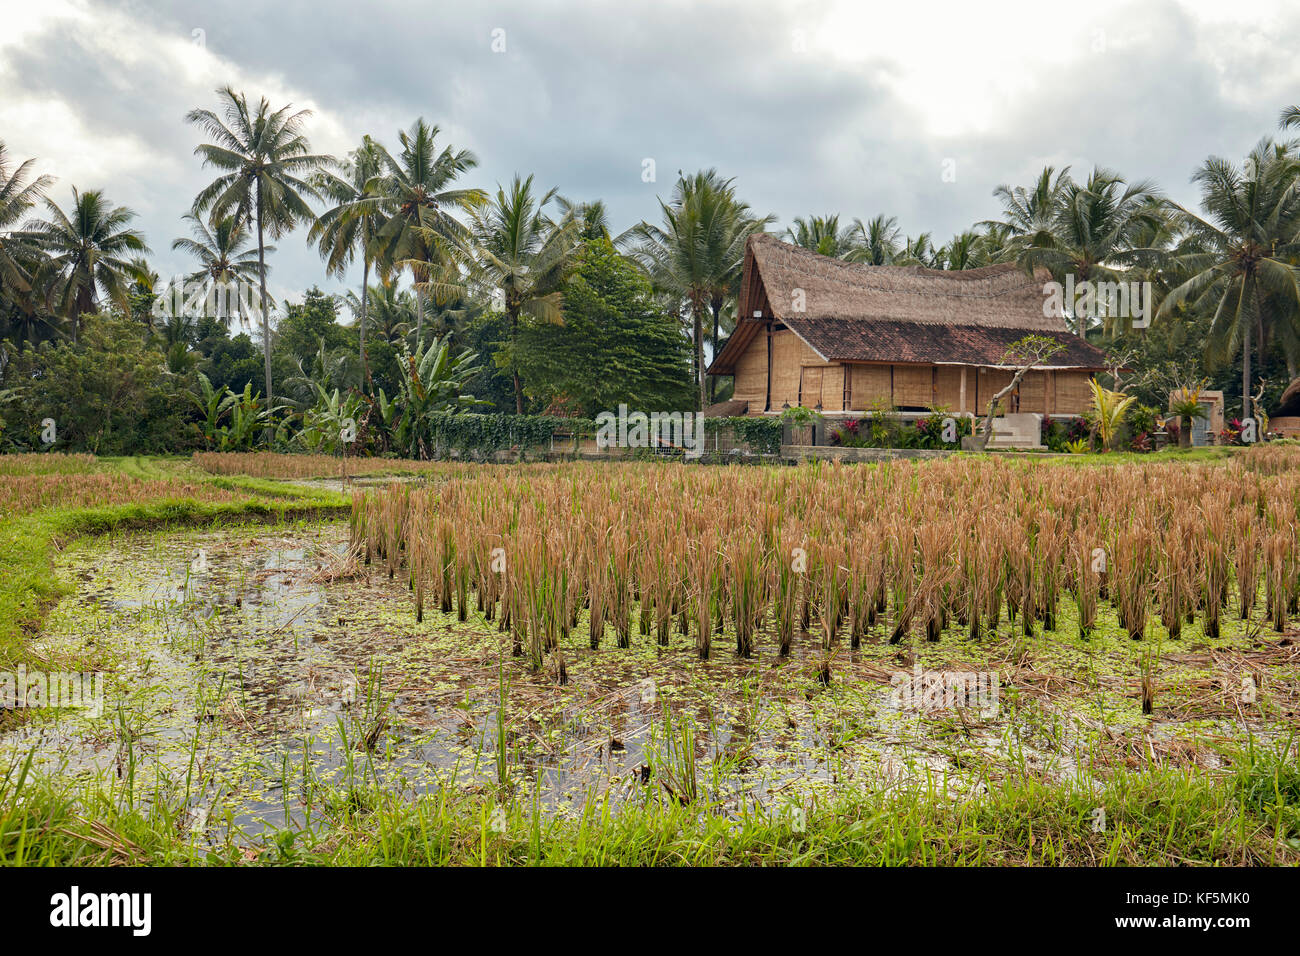 Rice paddy. Kajeng Rice Fields, Ubud. Bali, Indonesia. - Stock Image